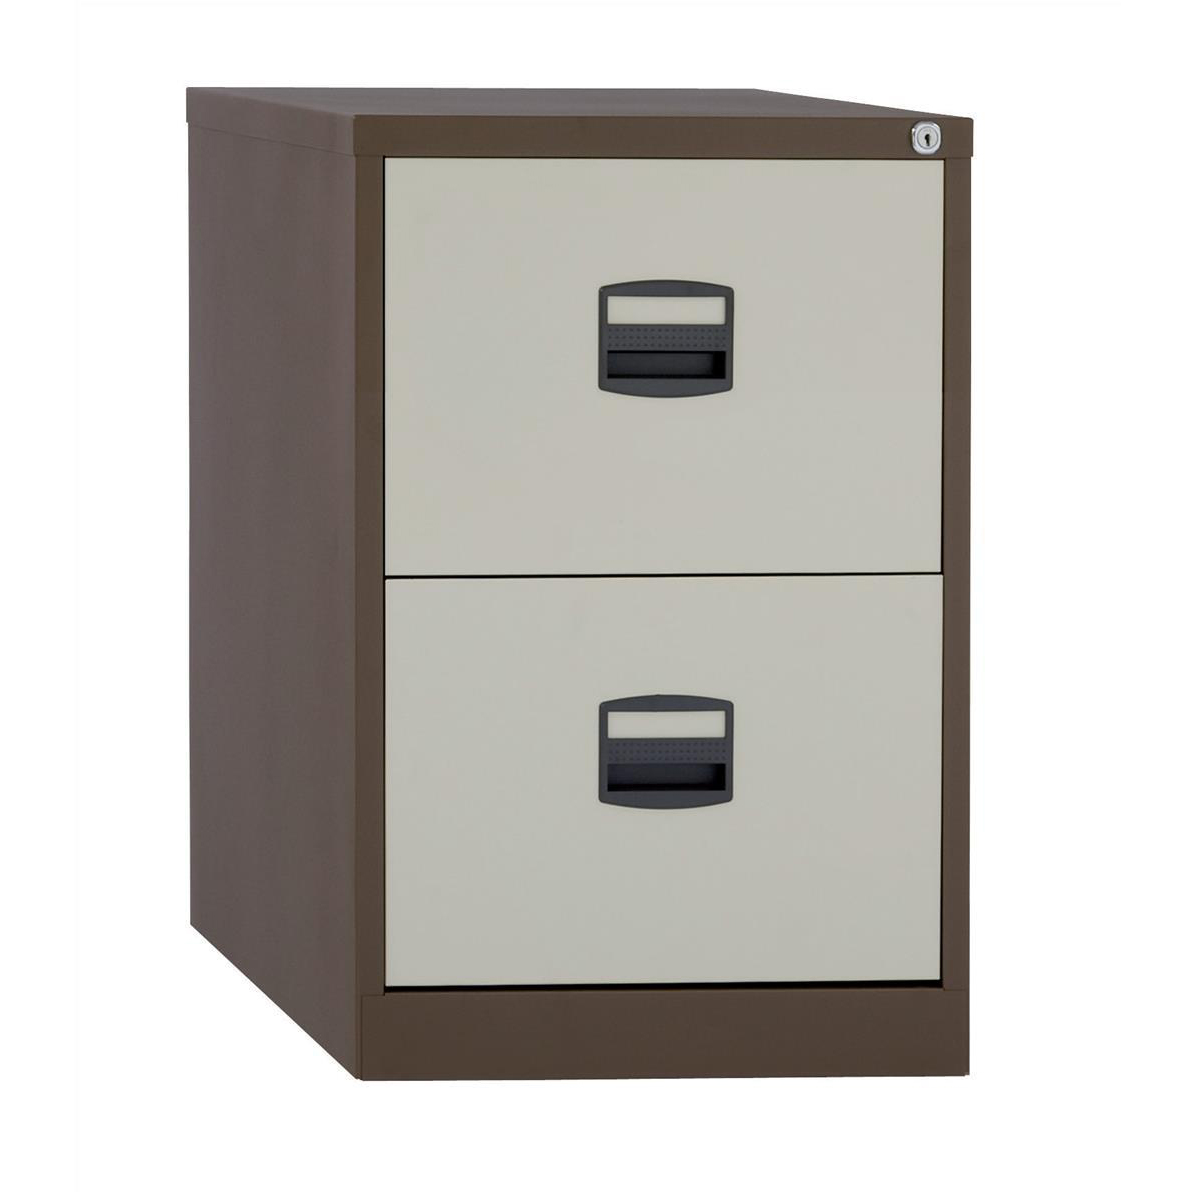 Trexus 2 Drawer Filing Cabinet 470x622x711mm Ref 395009